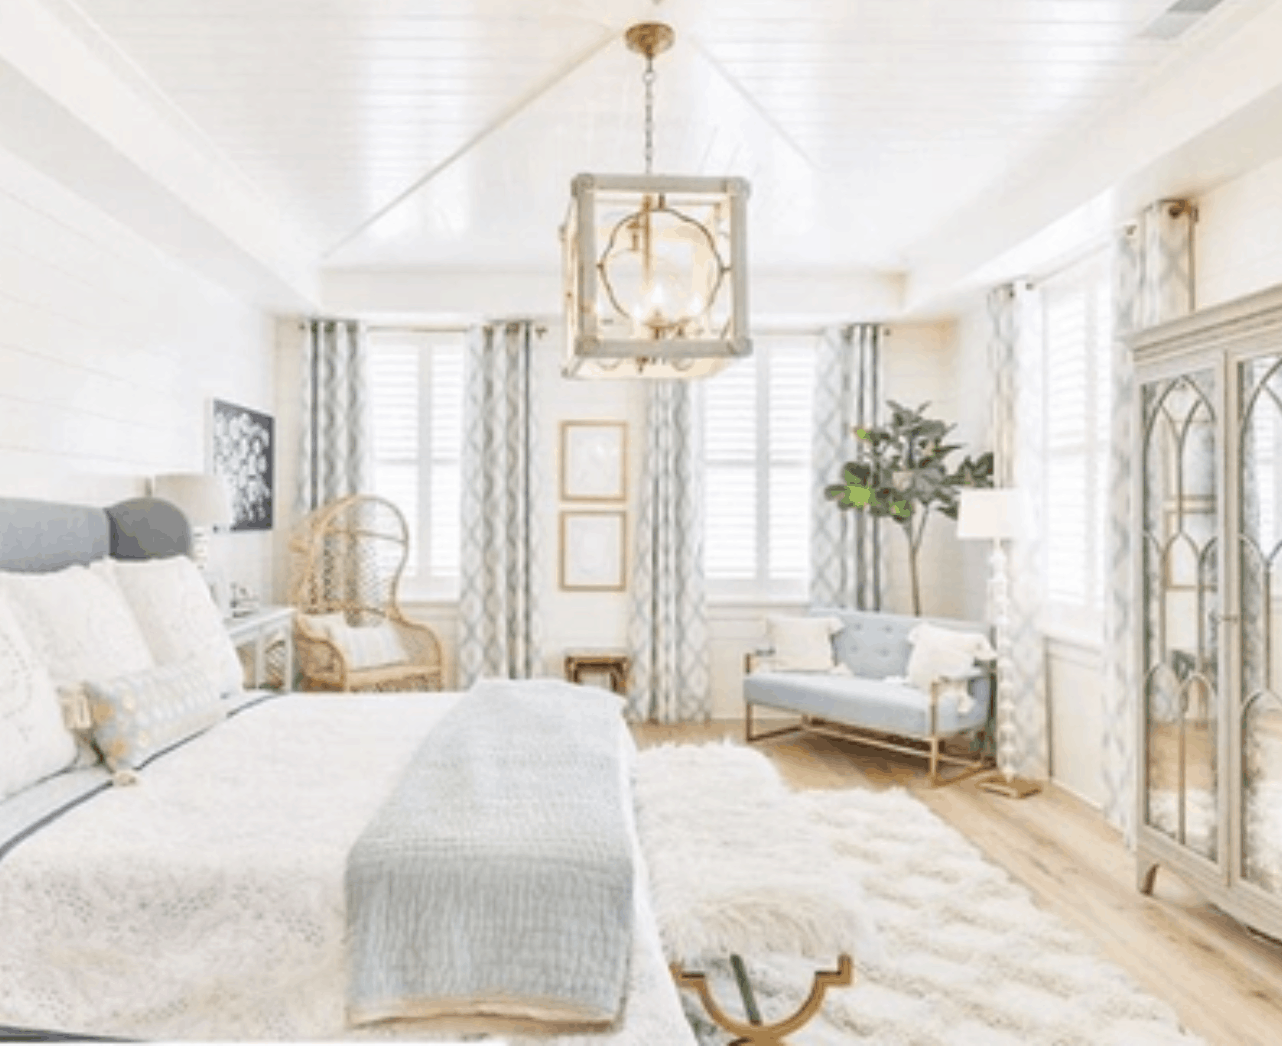 Top 10 Design Tips to Create a Romantic Master Bedroom ...